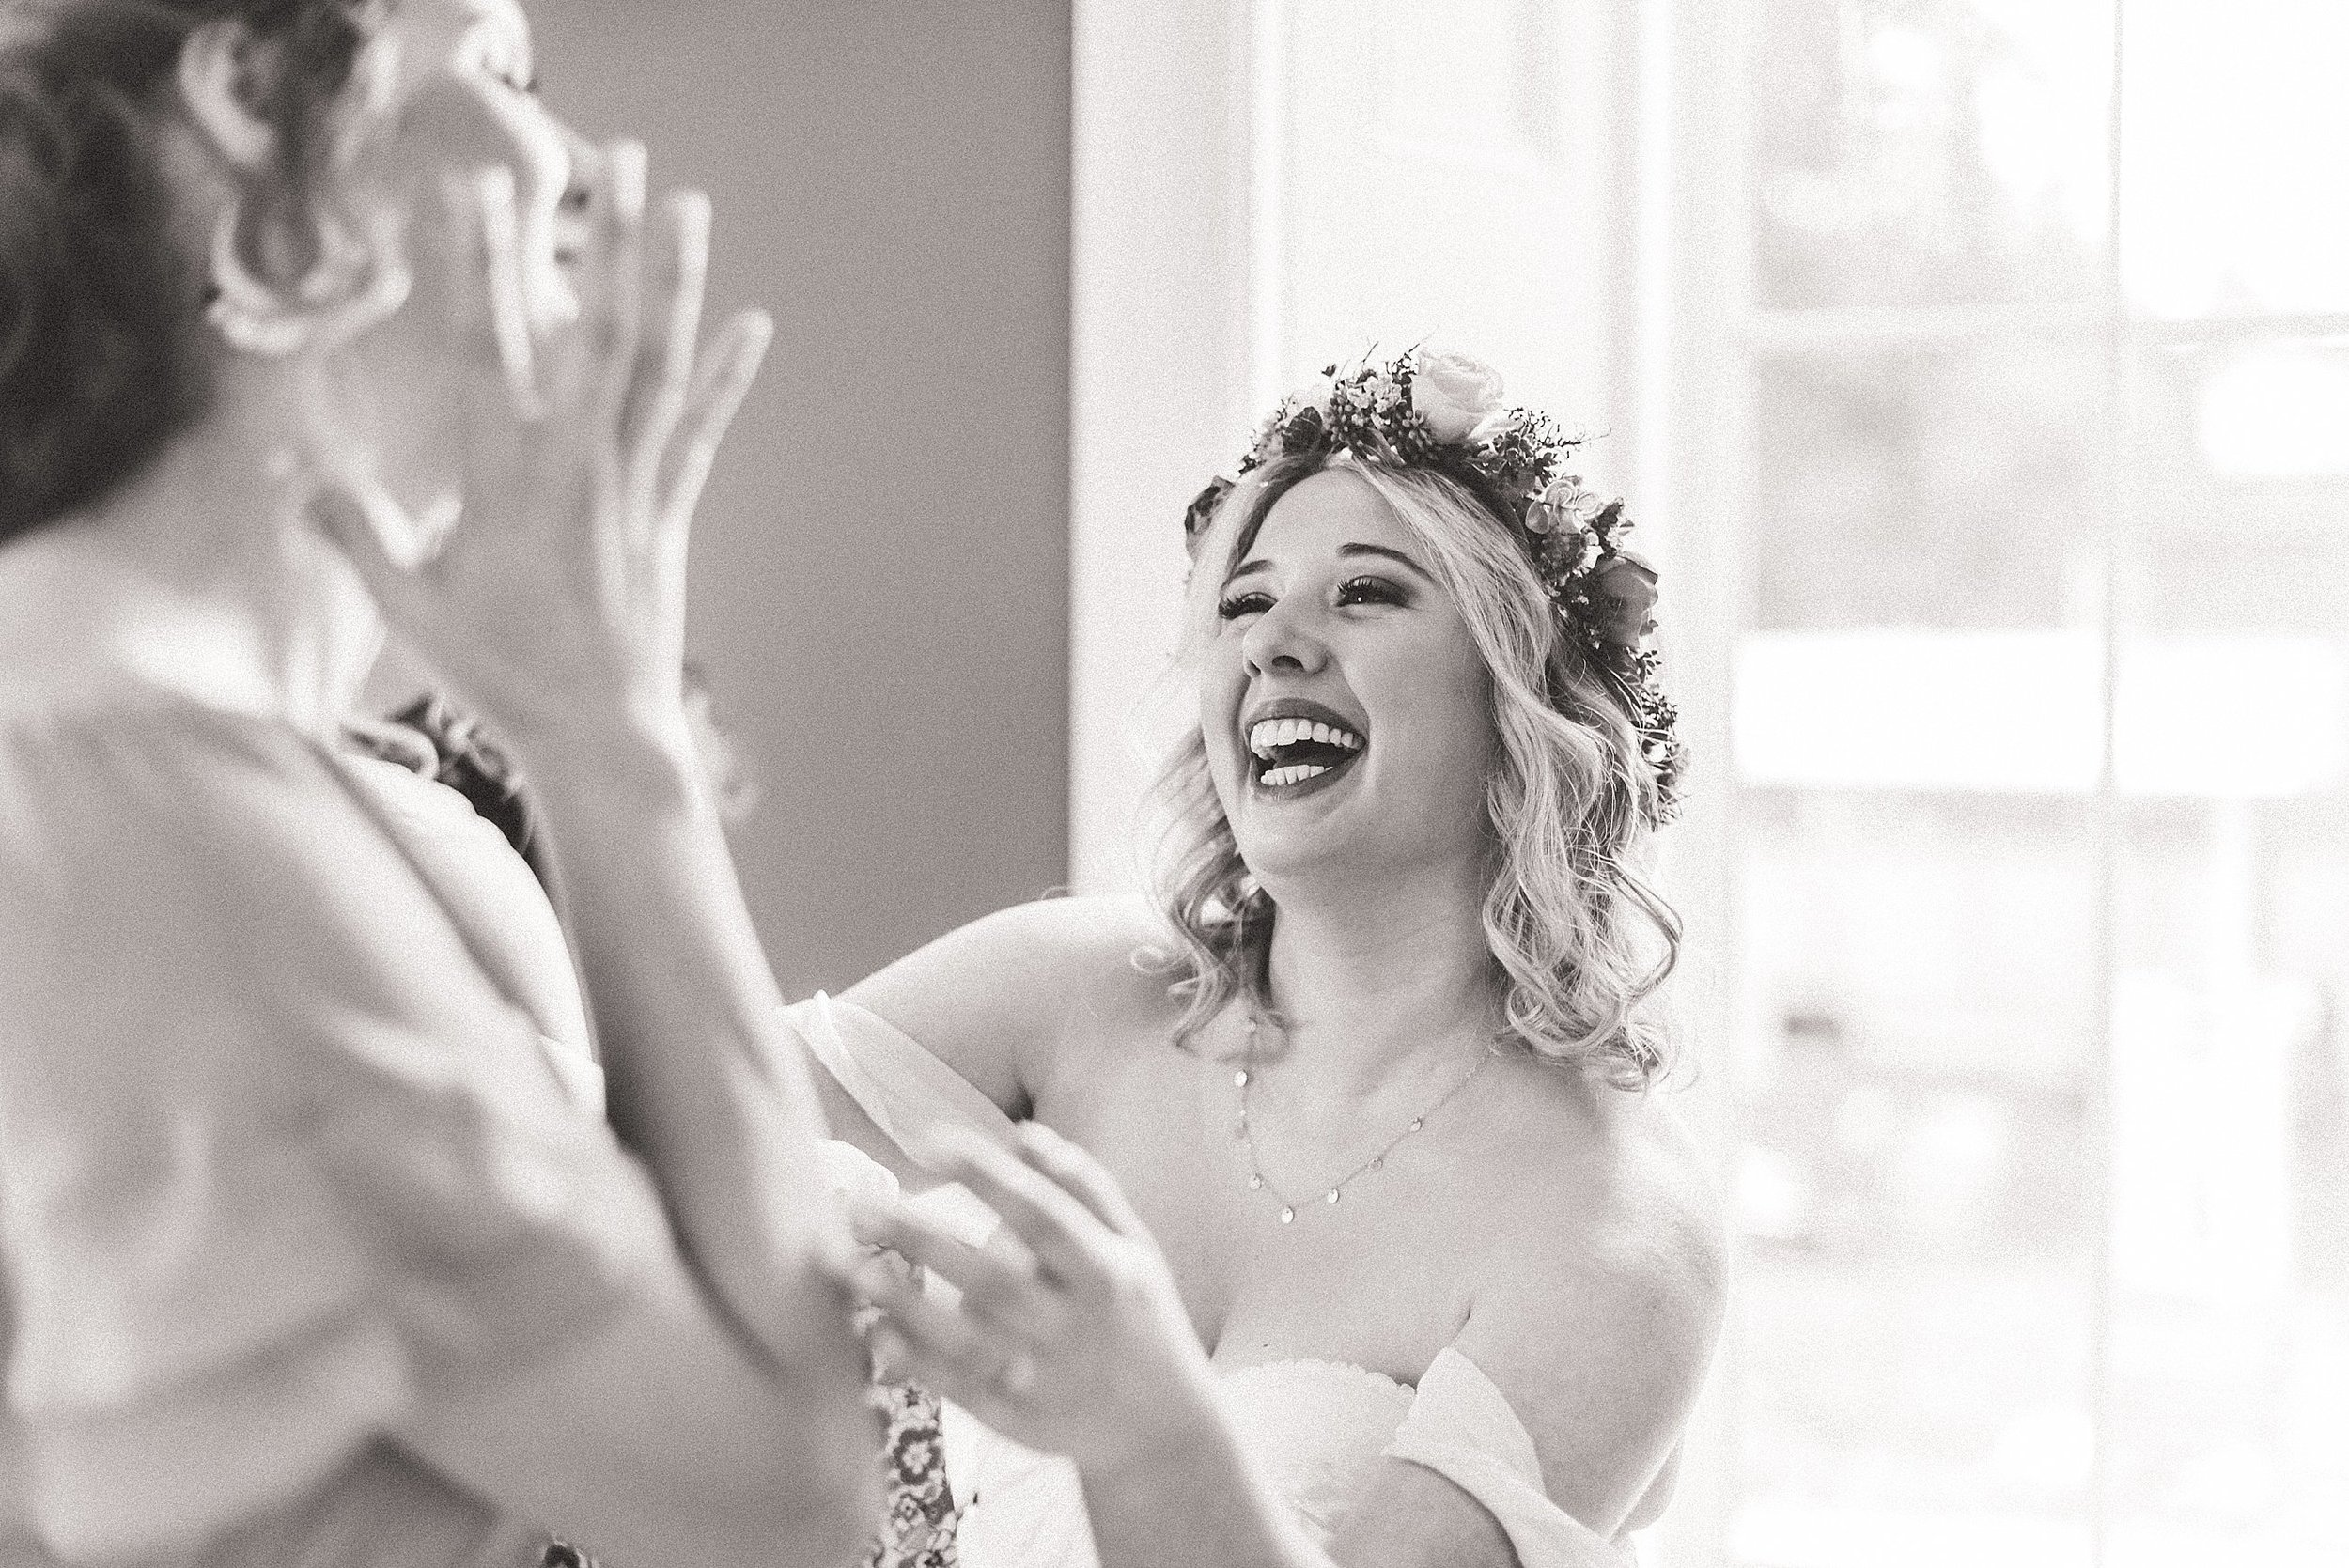 Laura kept breaking out into laughter!  It was such a fun time capturing these special moments with her best ladies.